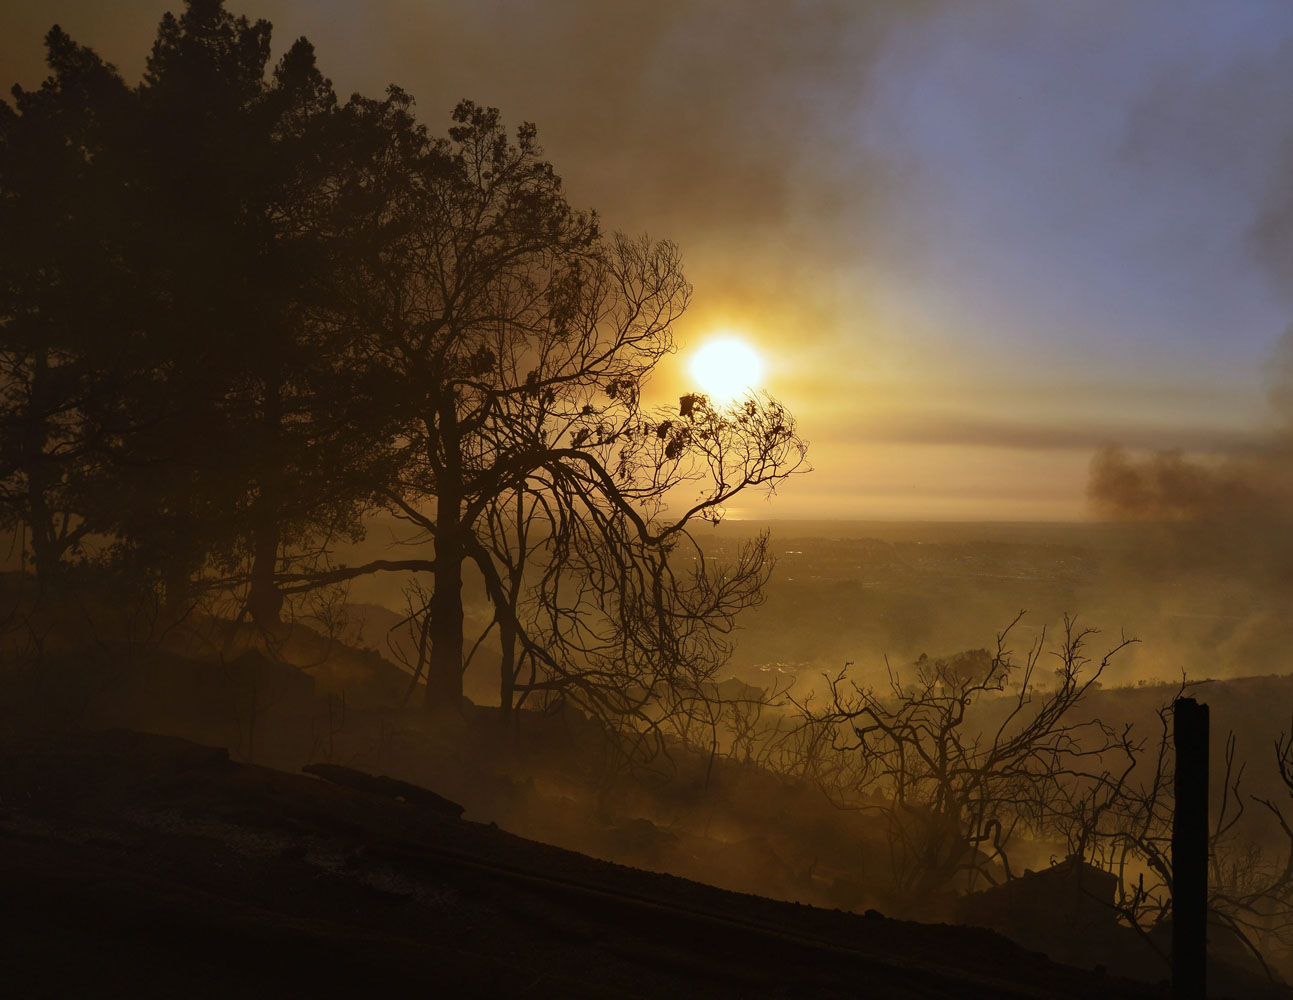 May 14, 2014. Smoldering trees obscure the sunset atop a hill in San Marcos, California.